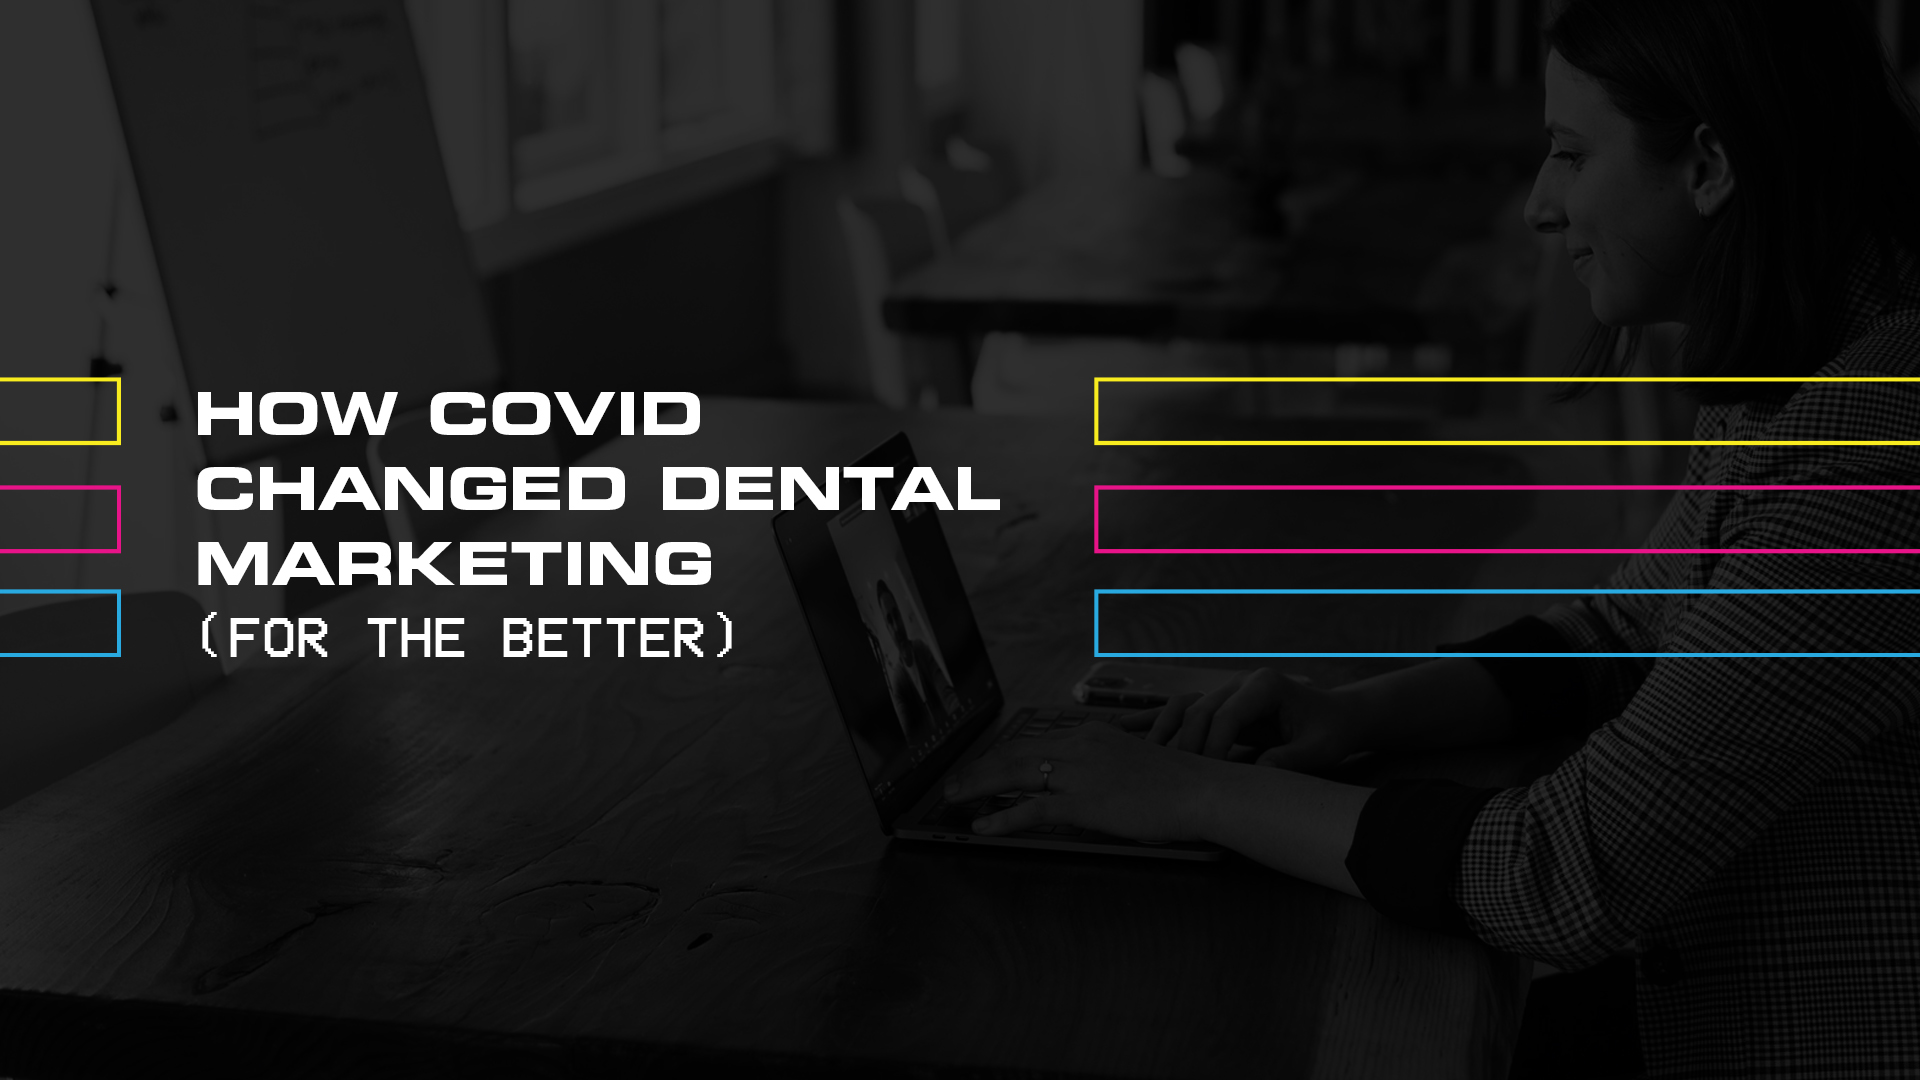 How COVID Changed Dental Marketing (For The Better)